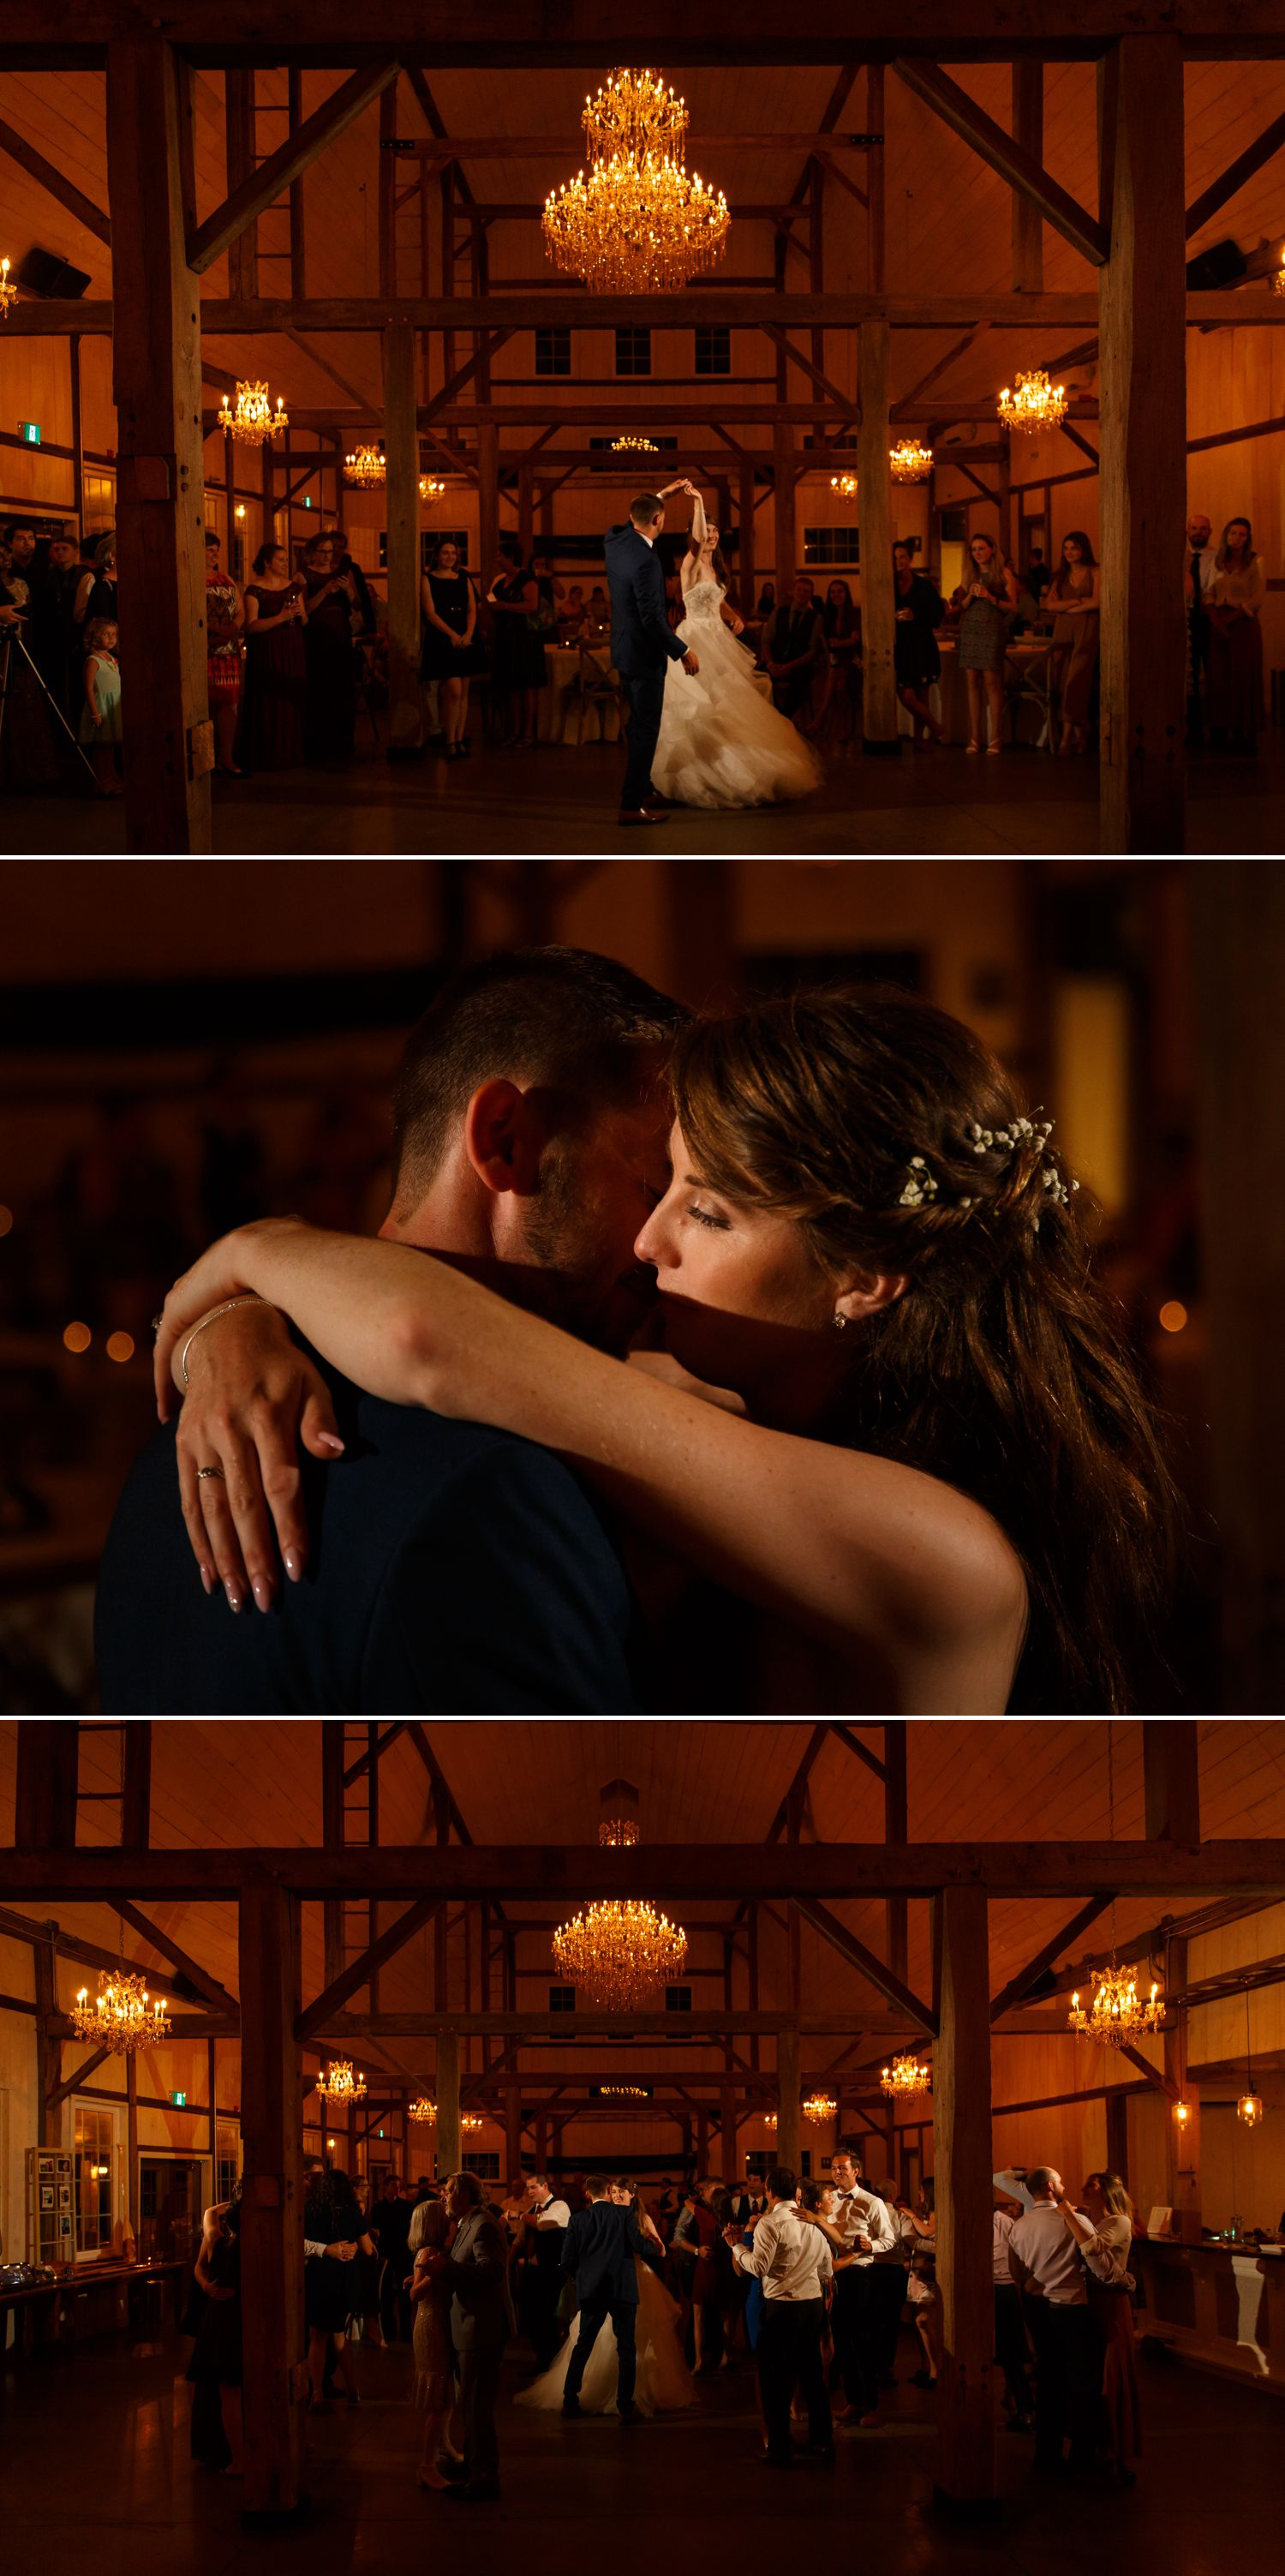 The bride and groom during their first dances during their wedding reception at Stonefields Estate